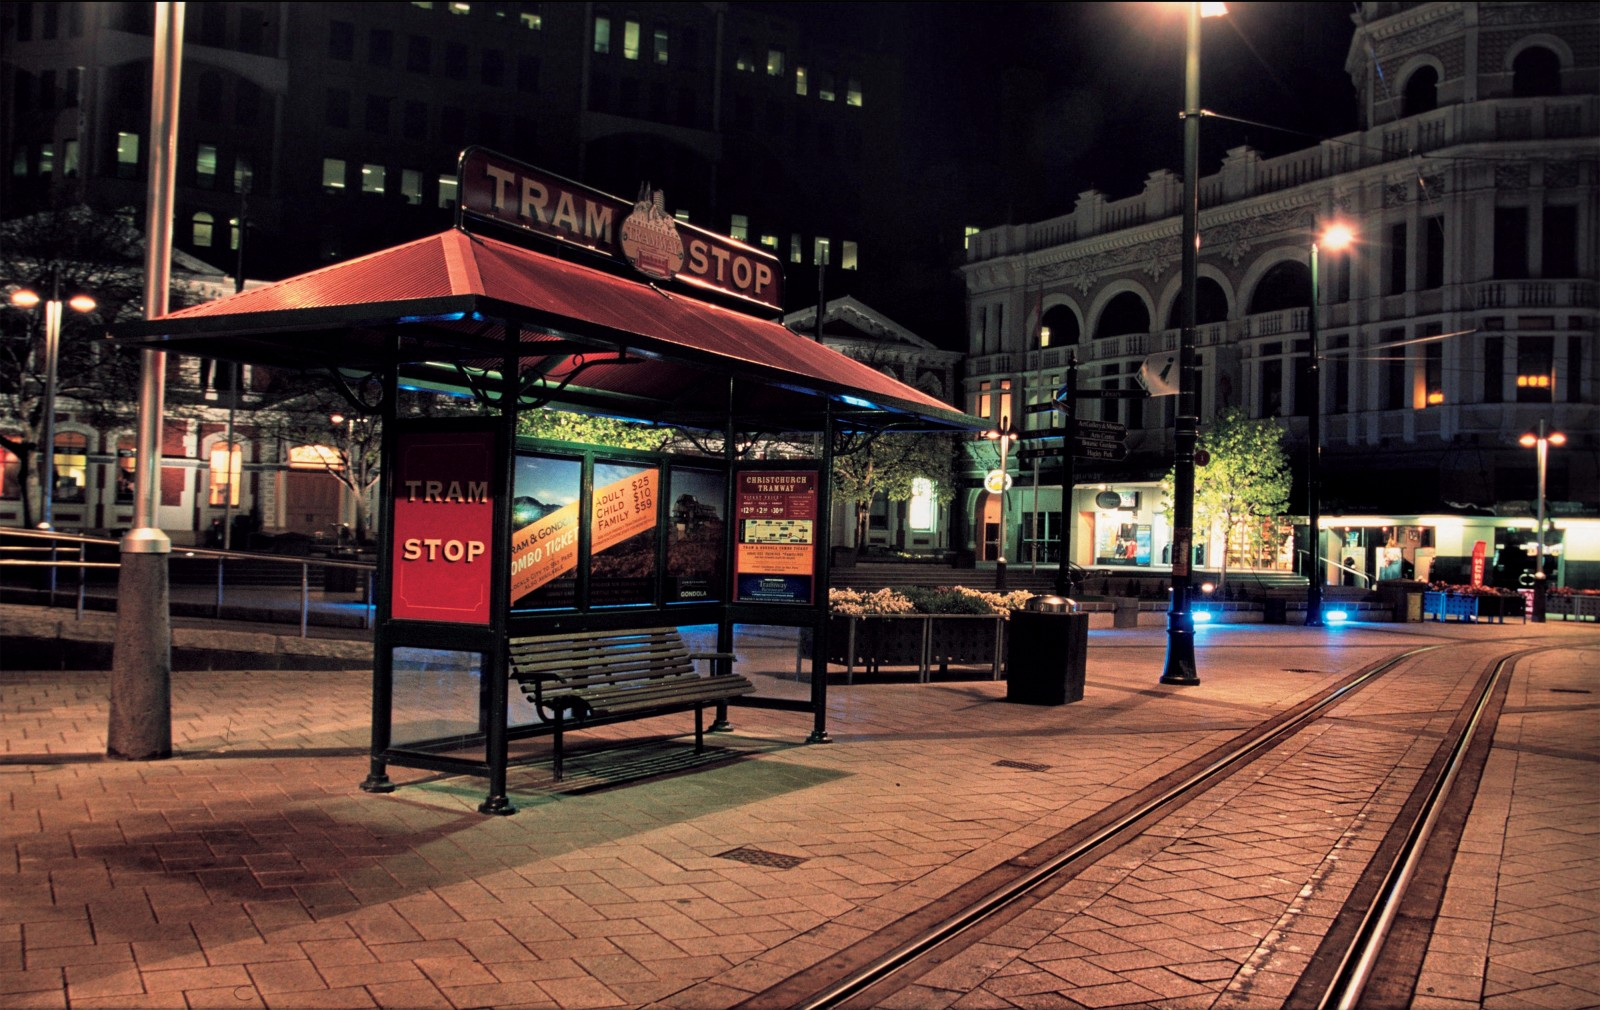 The Cathedral Square tram stop after the last tram has departed. Although Christchurch's original tramway ceased to operate in September 1954, the new loop is a major attraction in the city and looks much more likely to expand than stop running.